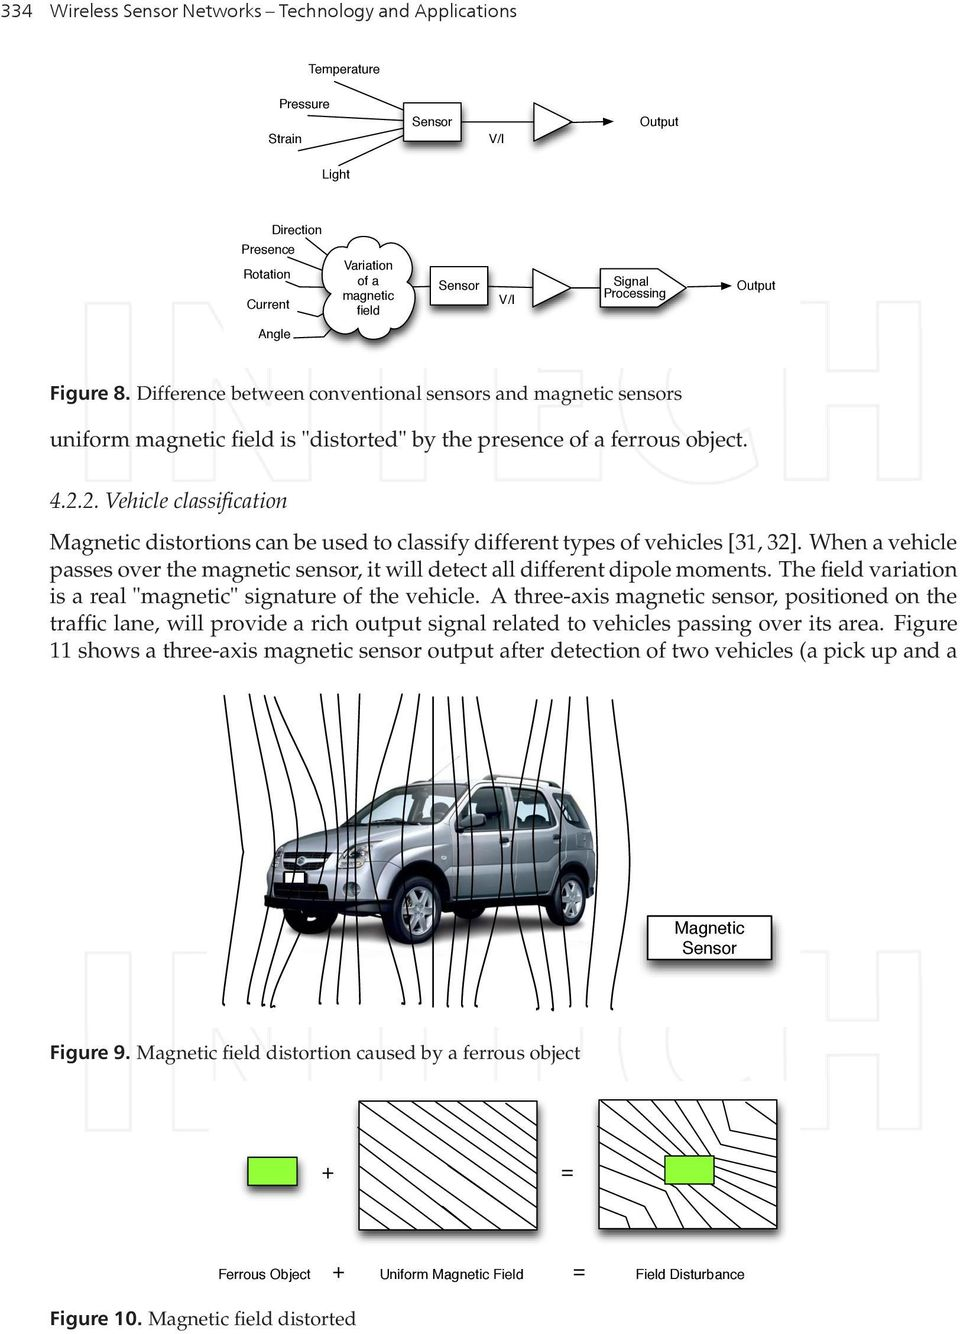 2. Vehicle classification Magnetic distortions can be used to classify different types of vehicles [31, 32]. When a vehicle passes over the magnetic sensor, it will detect all different dipole moments.